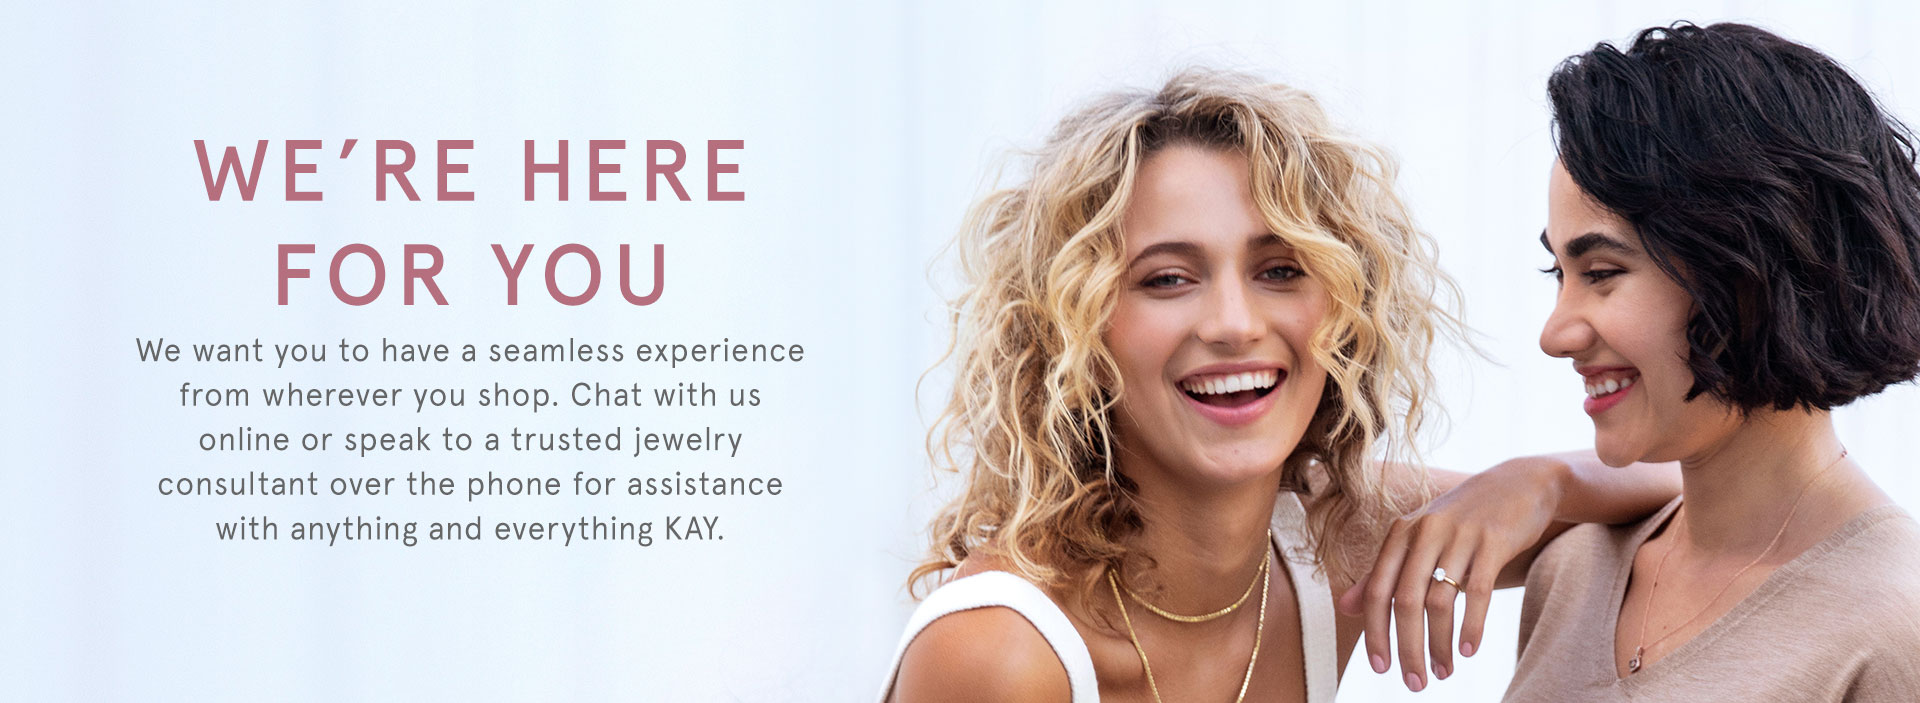 We're here for you: book a virtual appointment with a KAY jewelry consultant to answer any questions you have about our products and services.